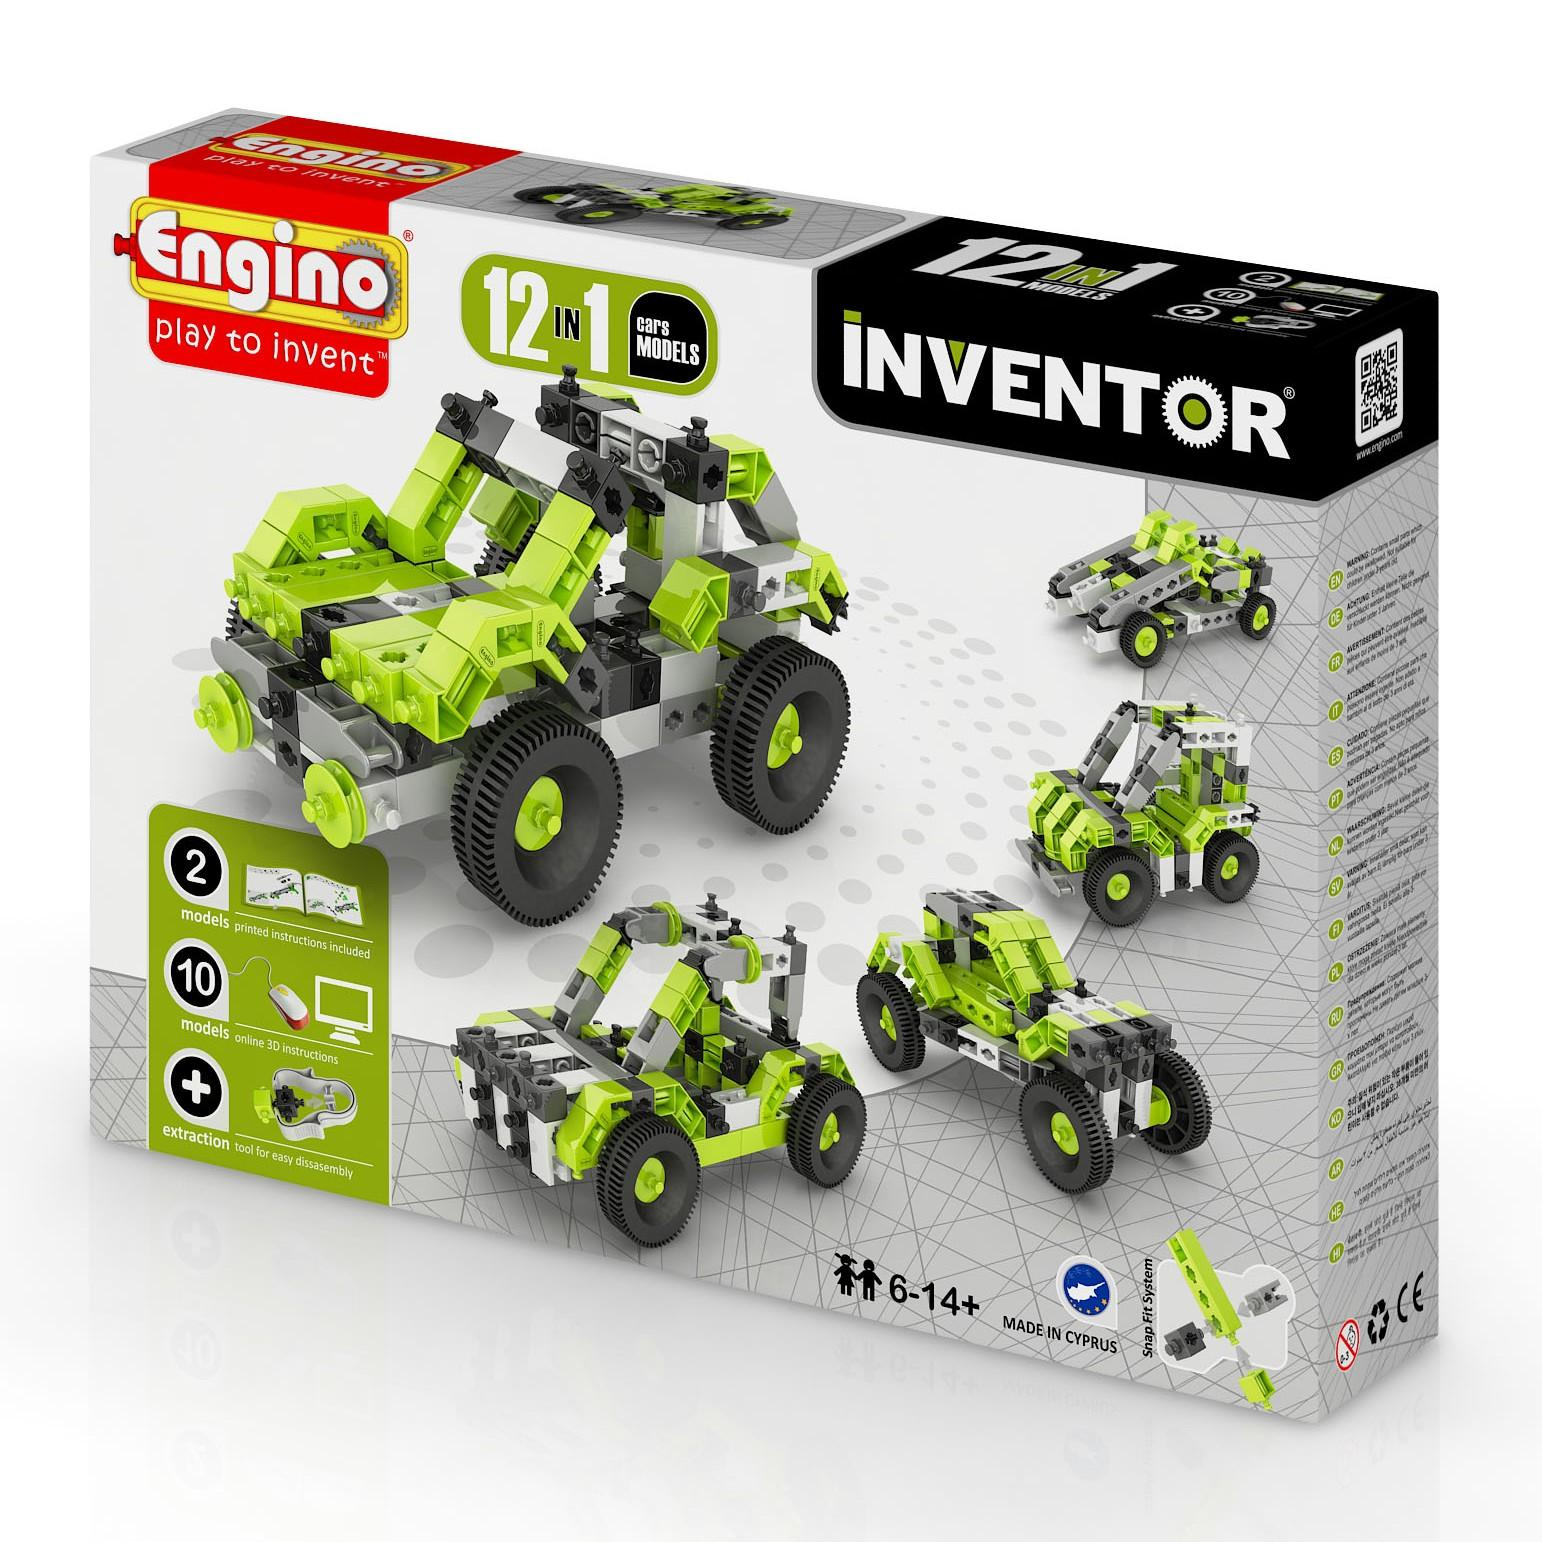 ENGINO INVENTOR 12 MODELS CARS  094158